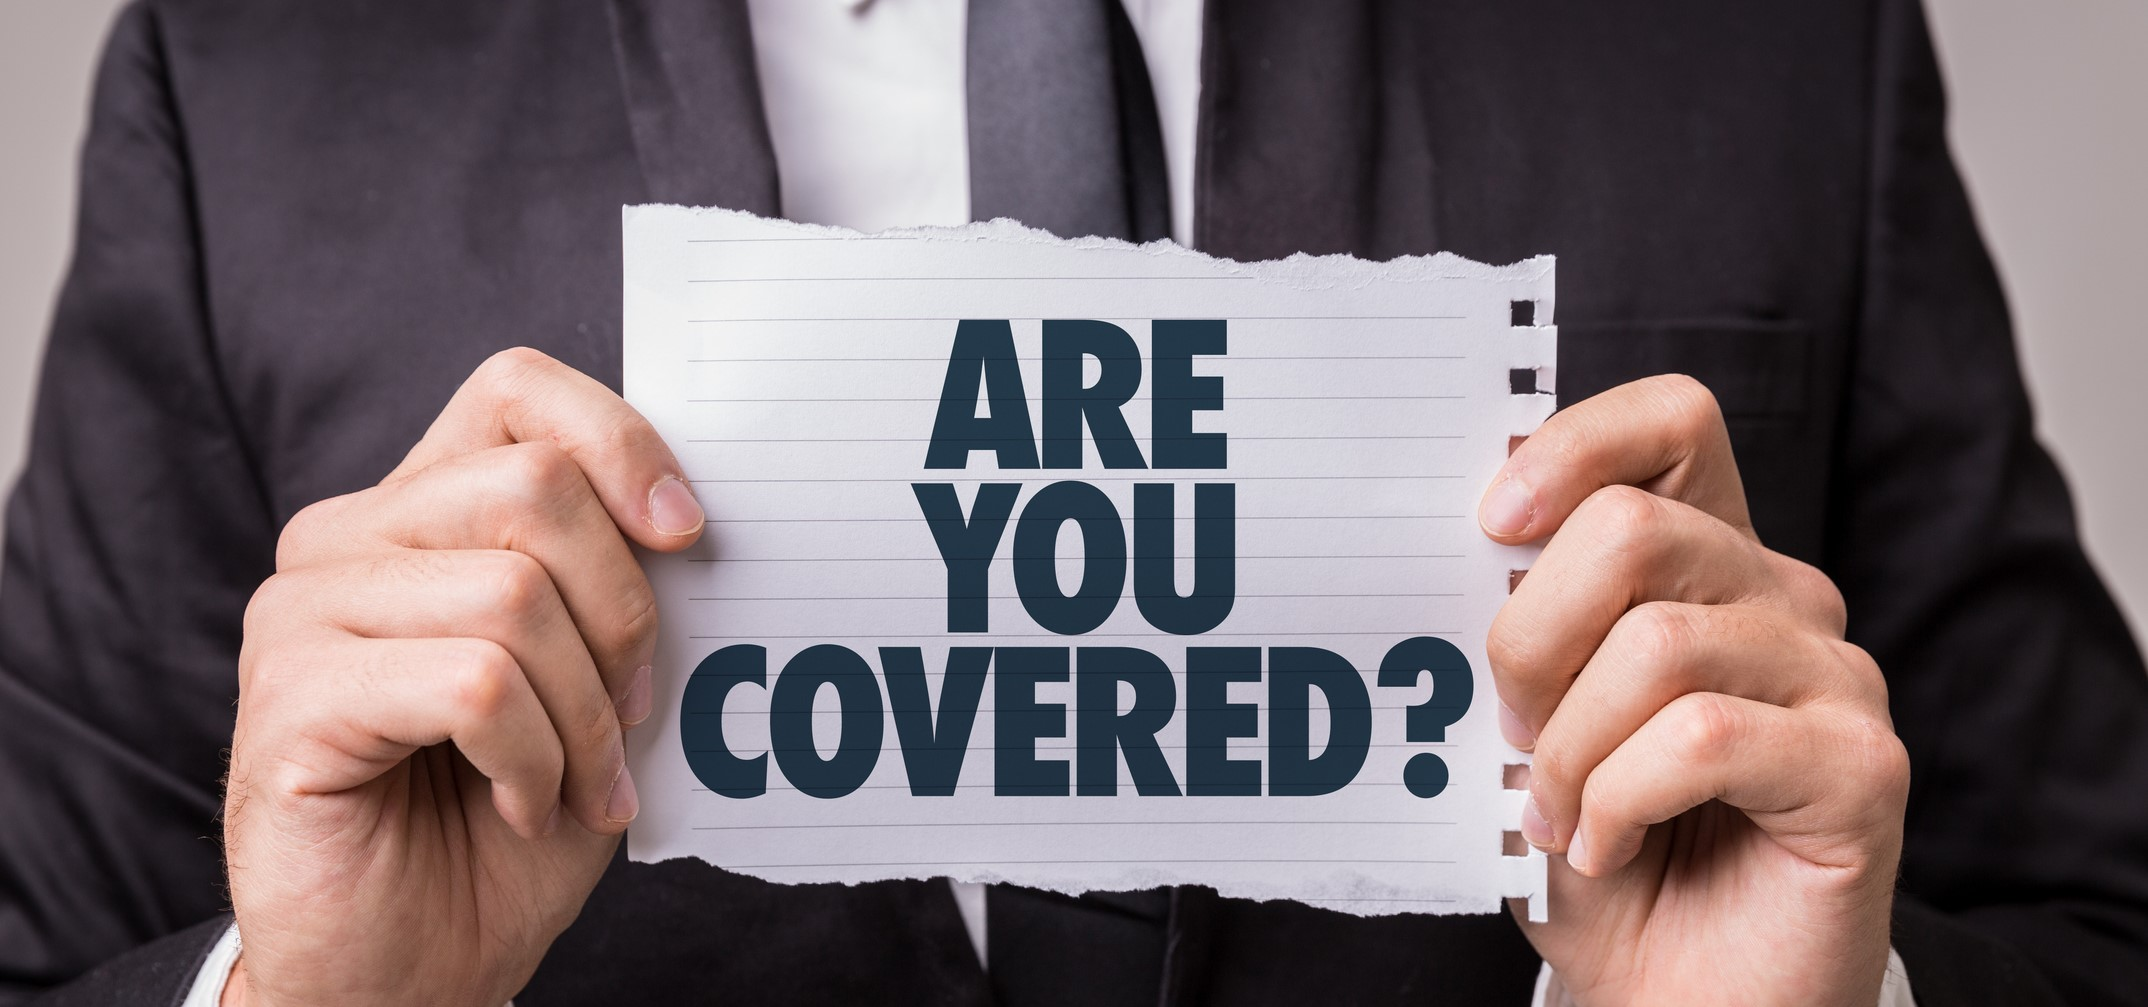 What's covered on my dental plan, coverage, dental coverage, PPO plans, HMO plans